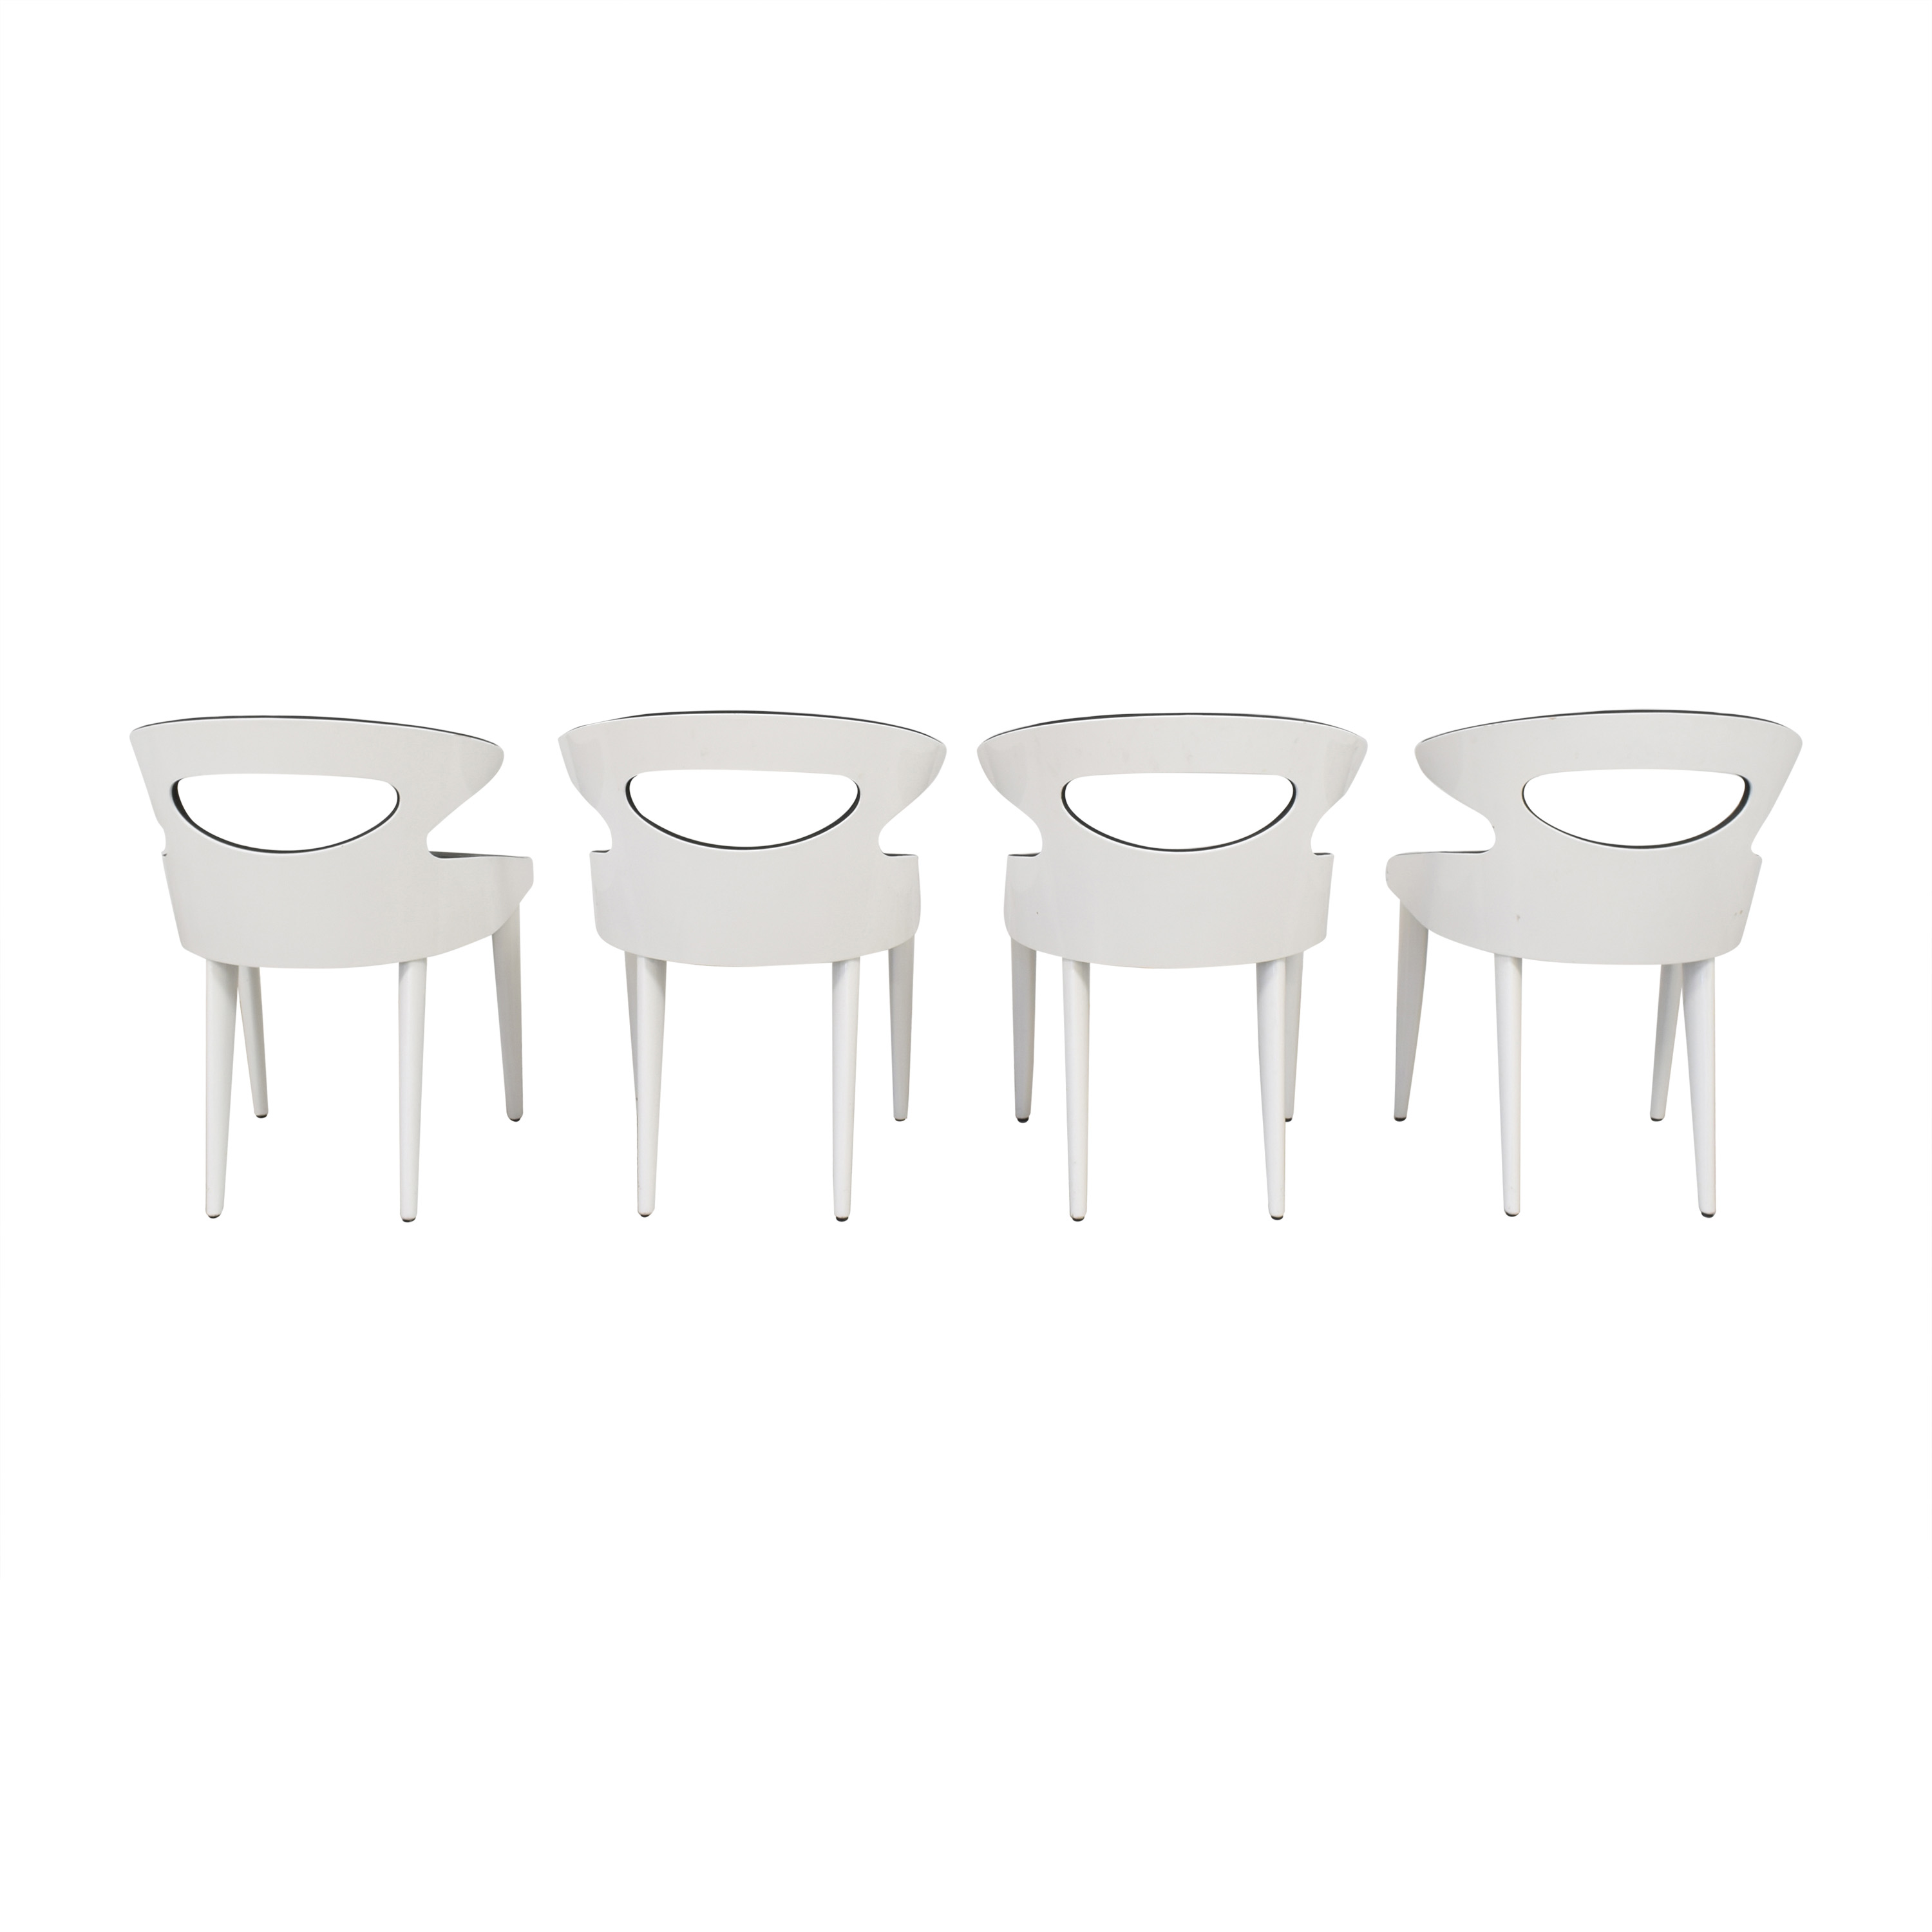 Potocco Potocco Modern Dining Chairs on sale